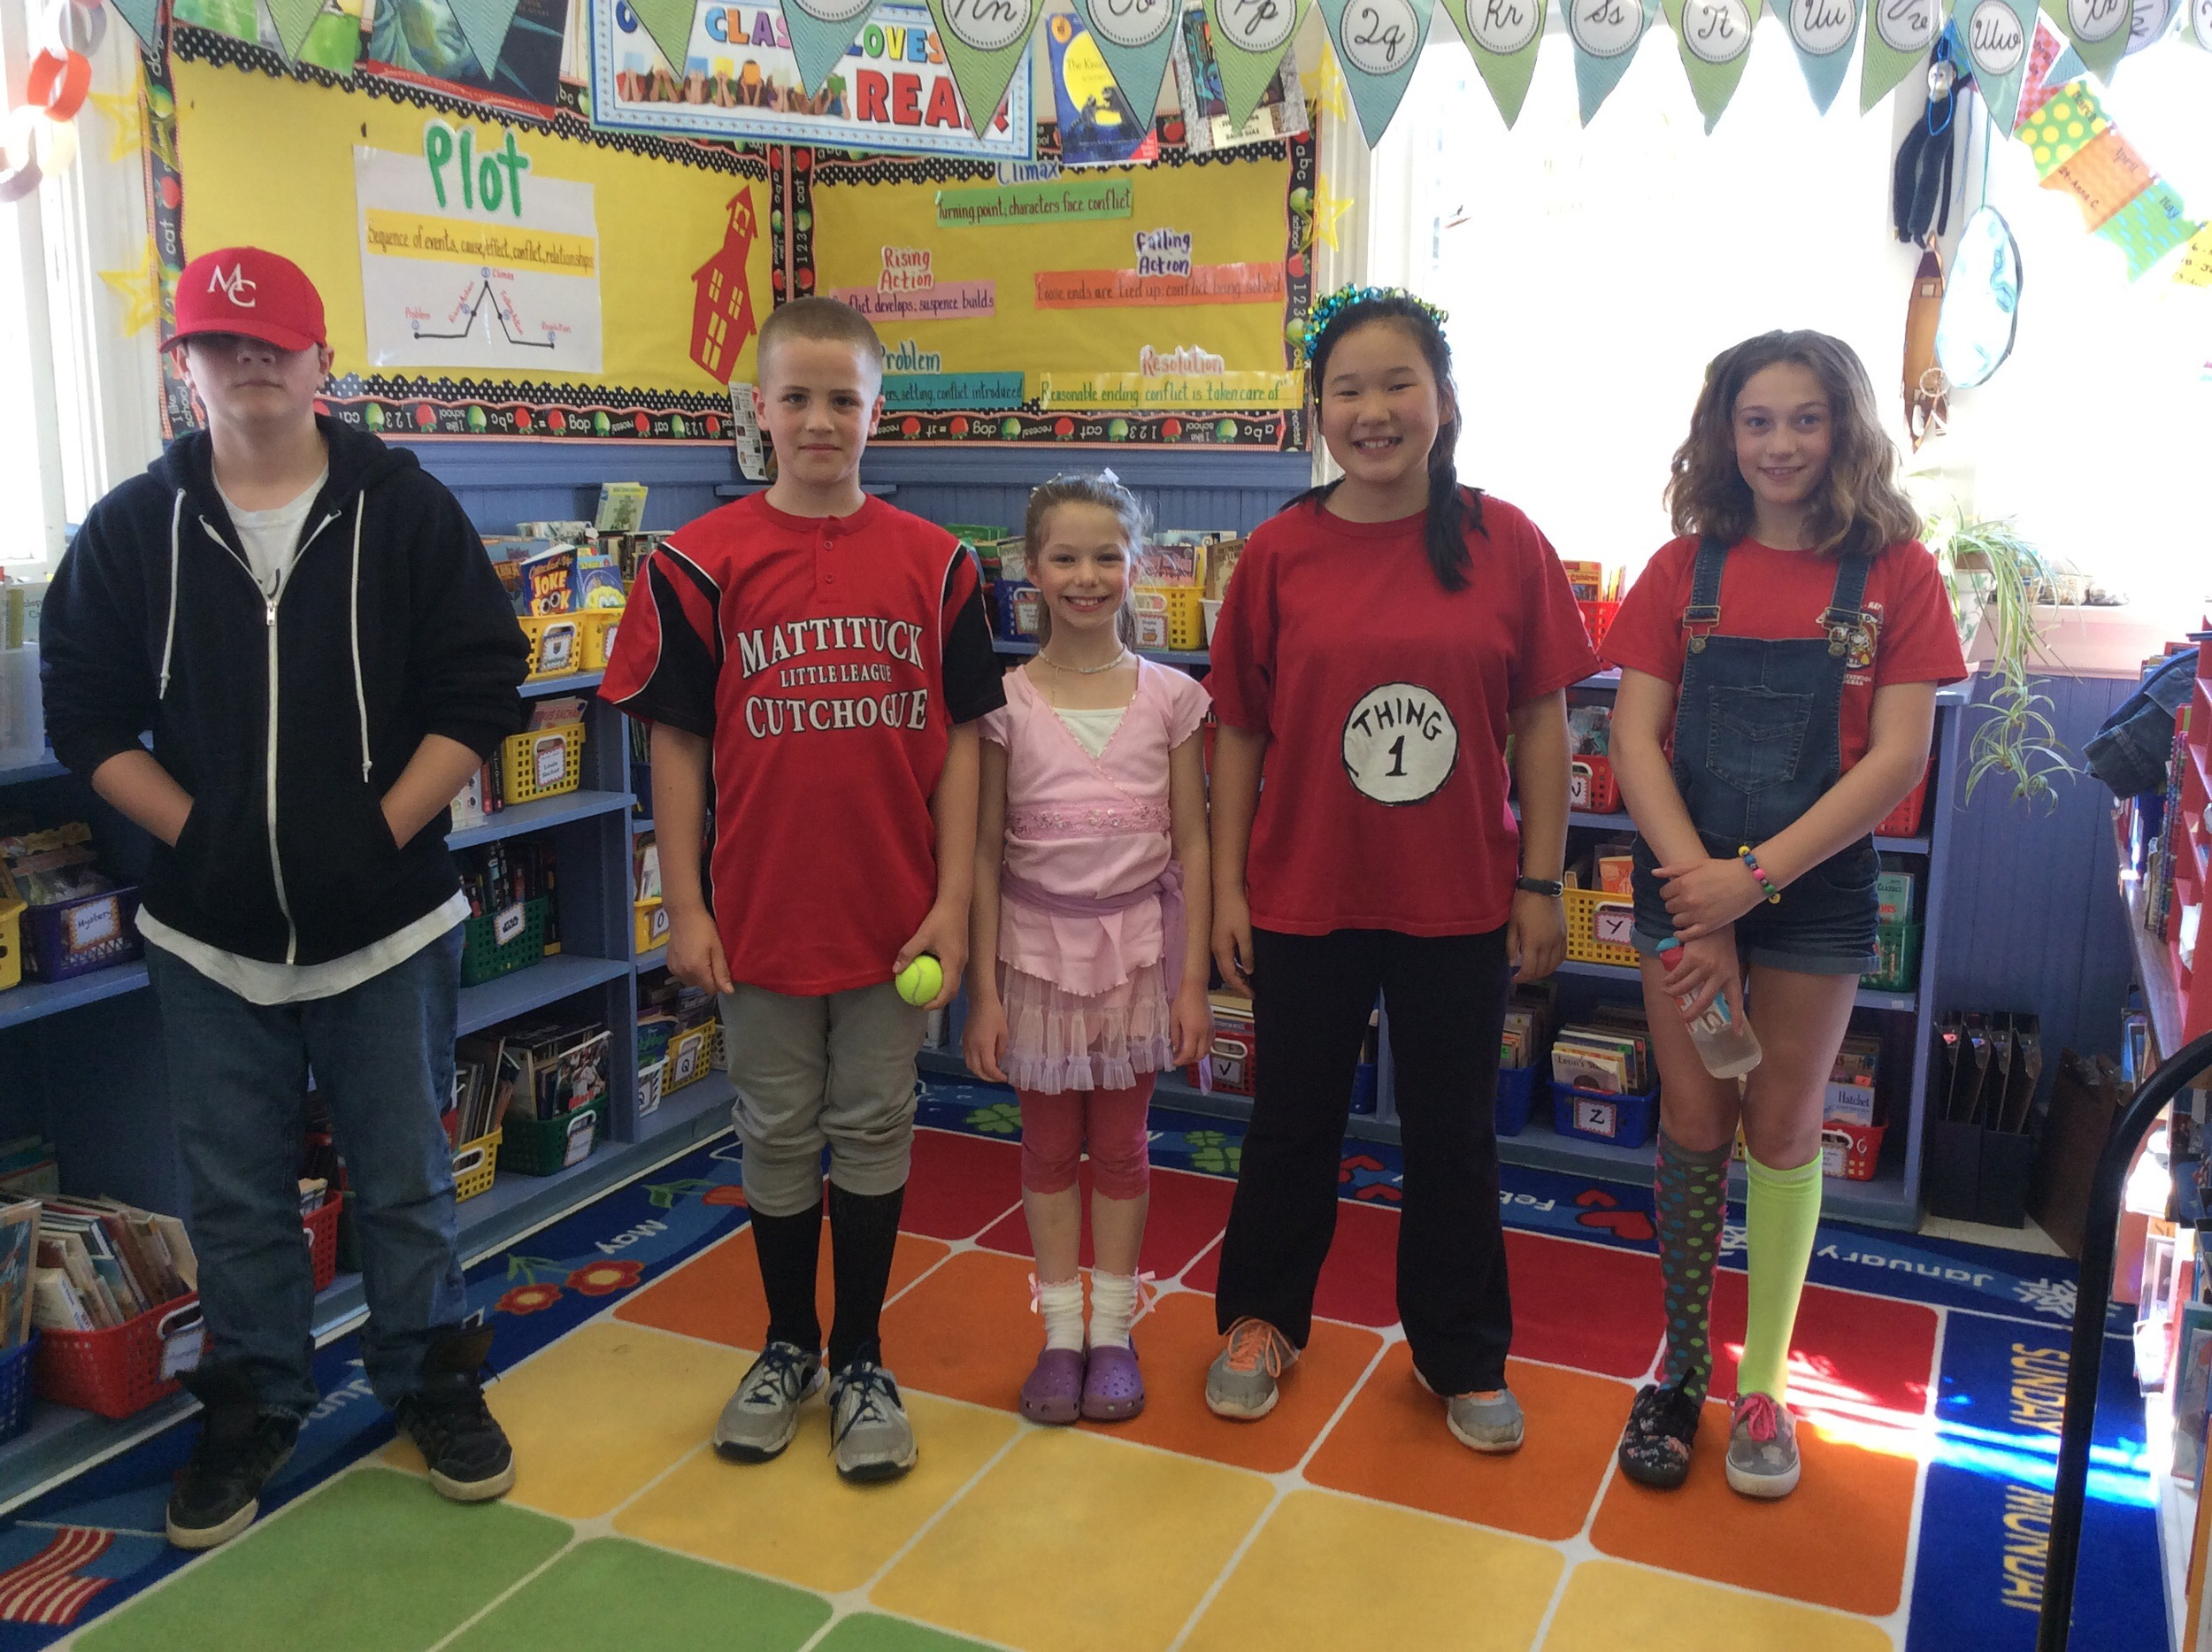 L to R: Jonny as a Baseball character, Casey at the Bat, Fancy Nacy, Thing 1, and Junie B. Jones